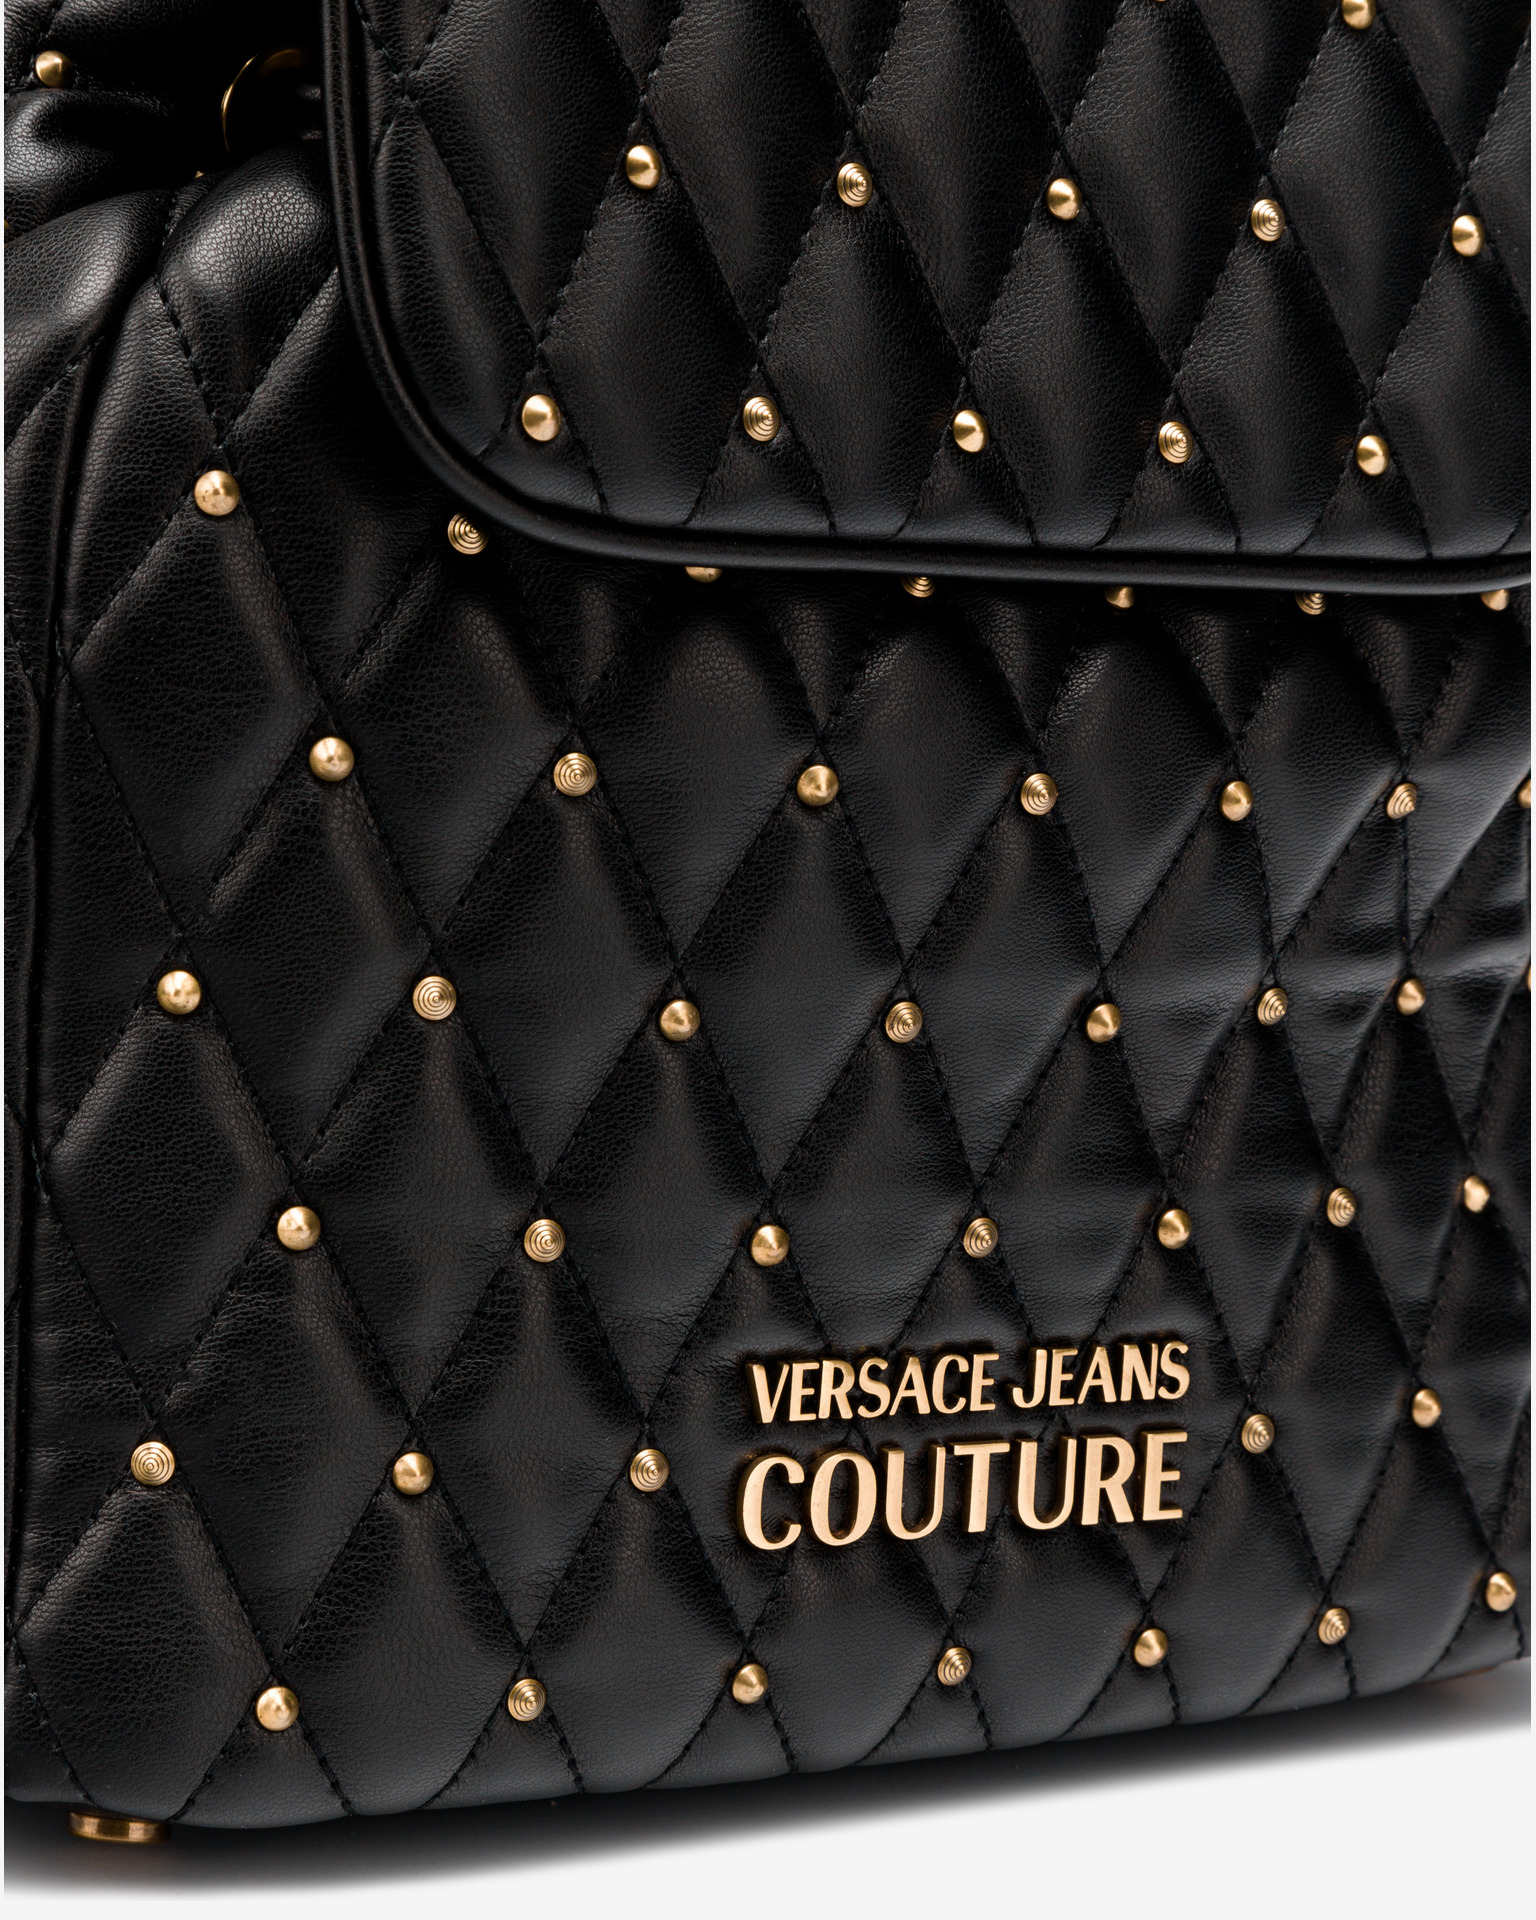 Versace Jeans Couture black backpack